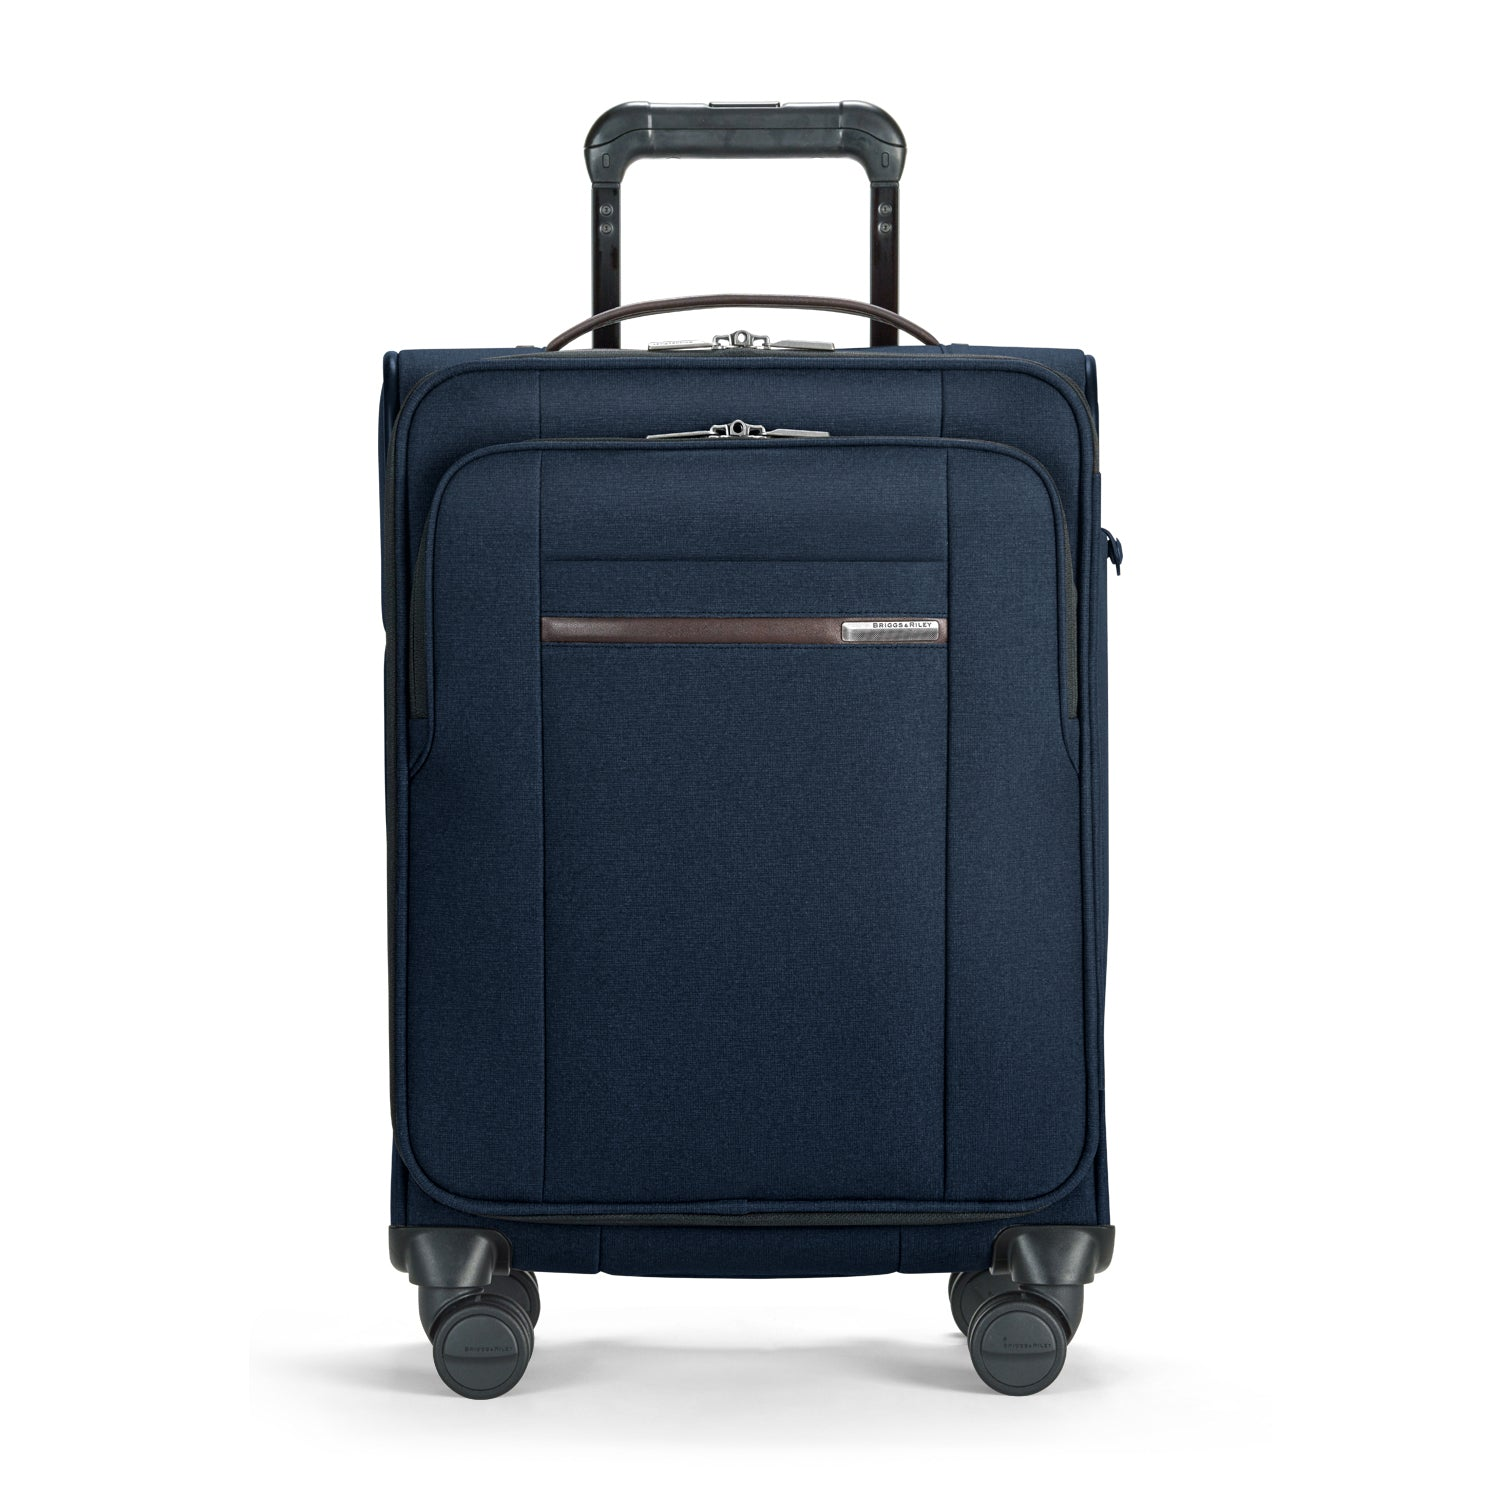 Briggs & Riley Kinzie Street International Carry-On Spinner - Navy | MEGO